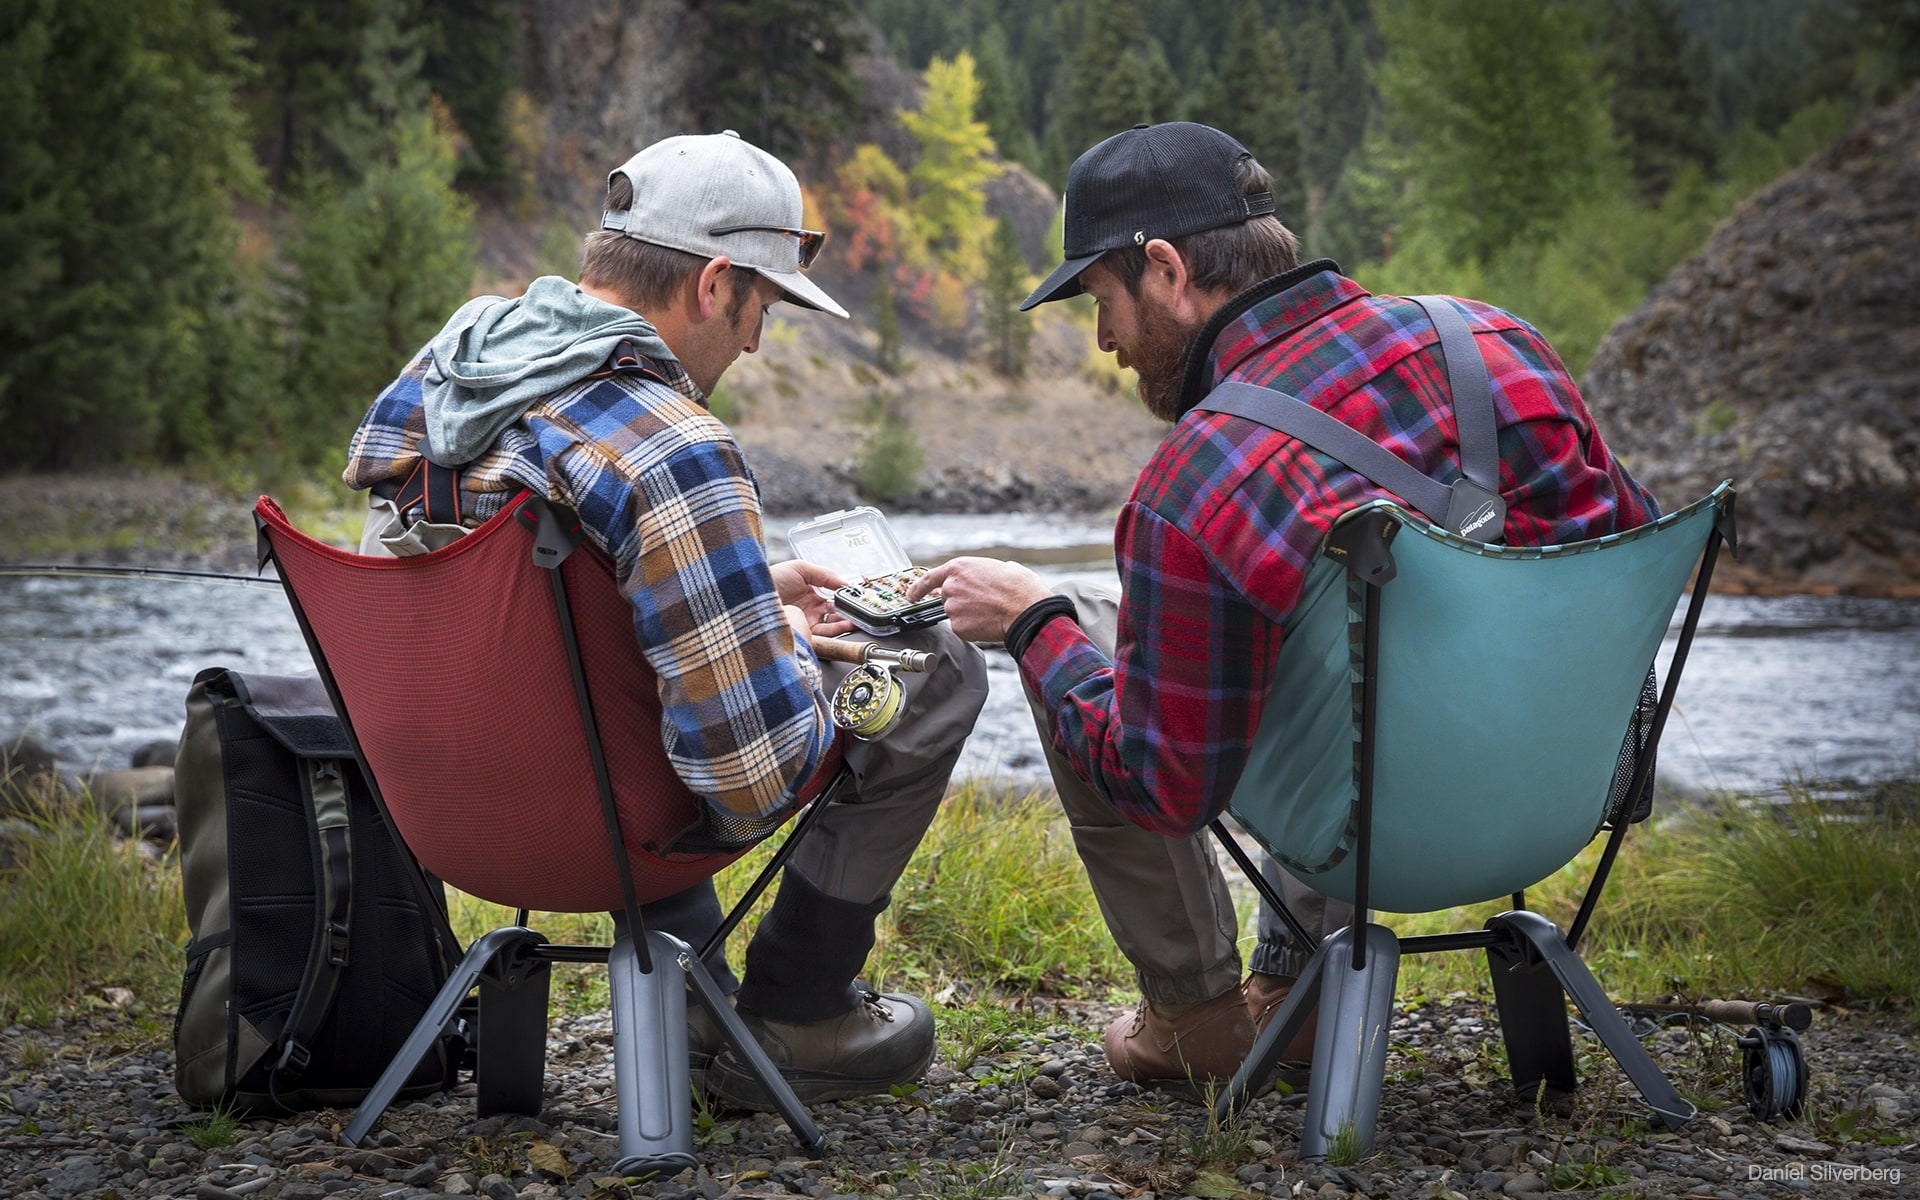 Two men in outdoor outfits sitting in red and green Therm-a-Rest Quadra camp chairs by ITO Design near river, looking at fishing baits